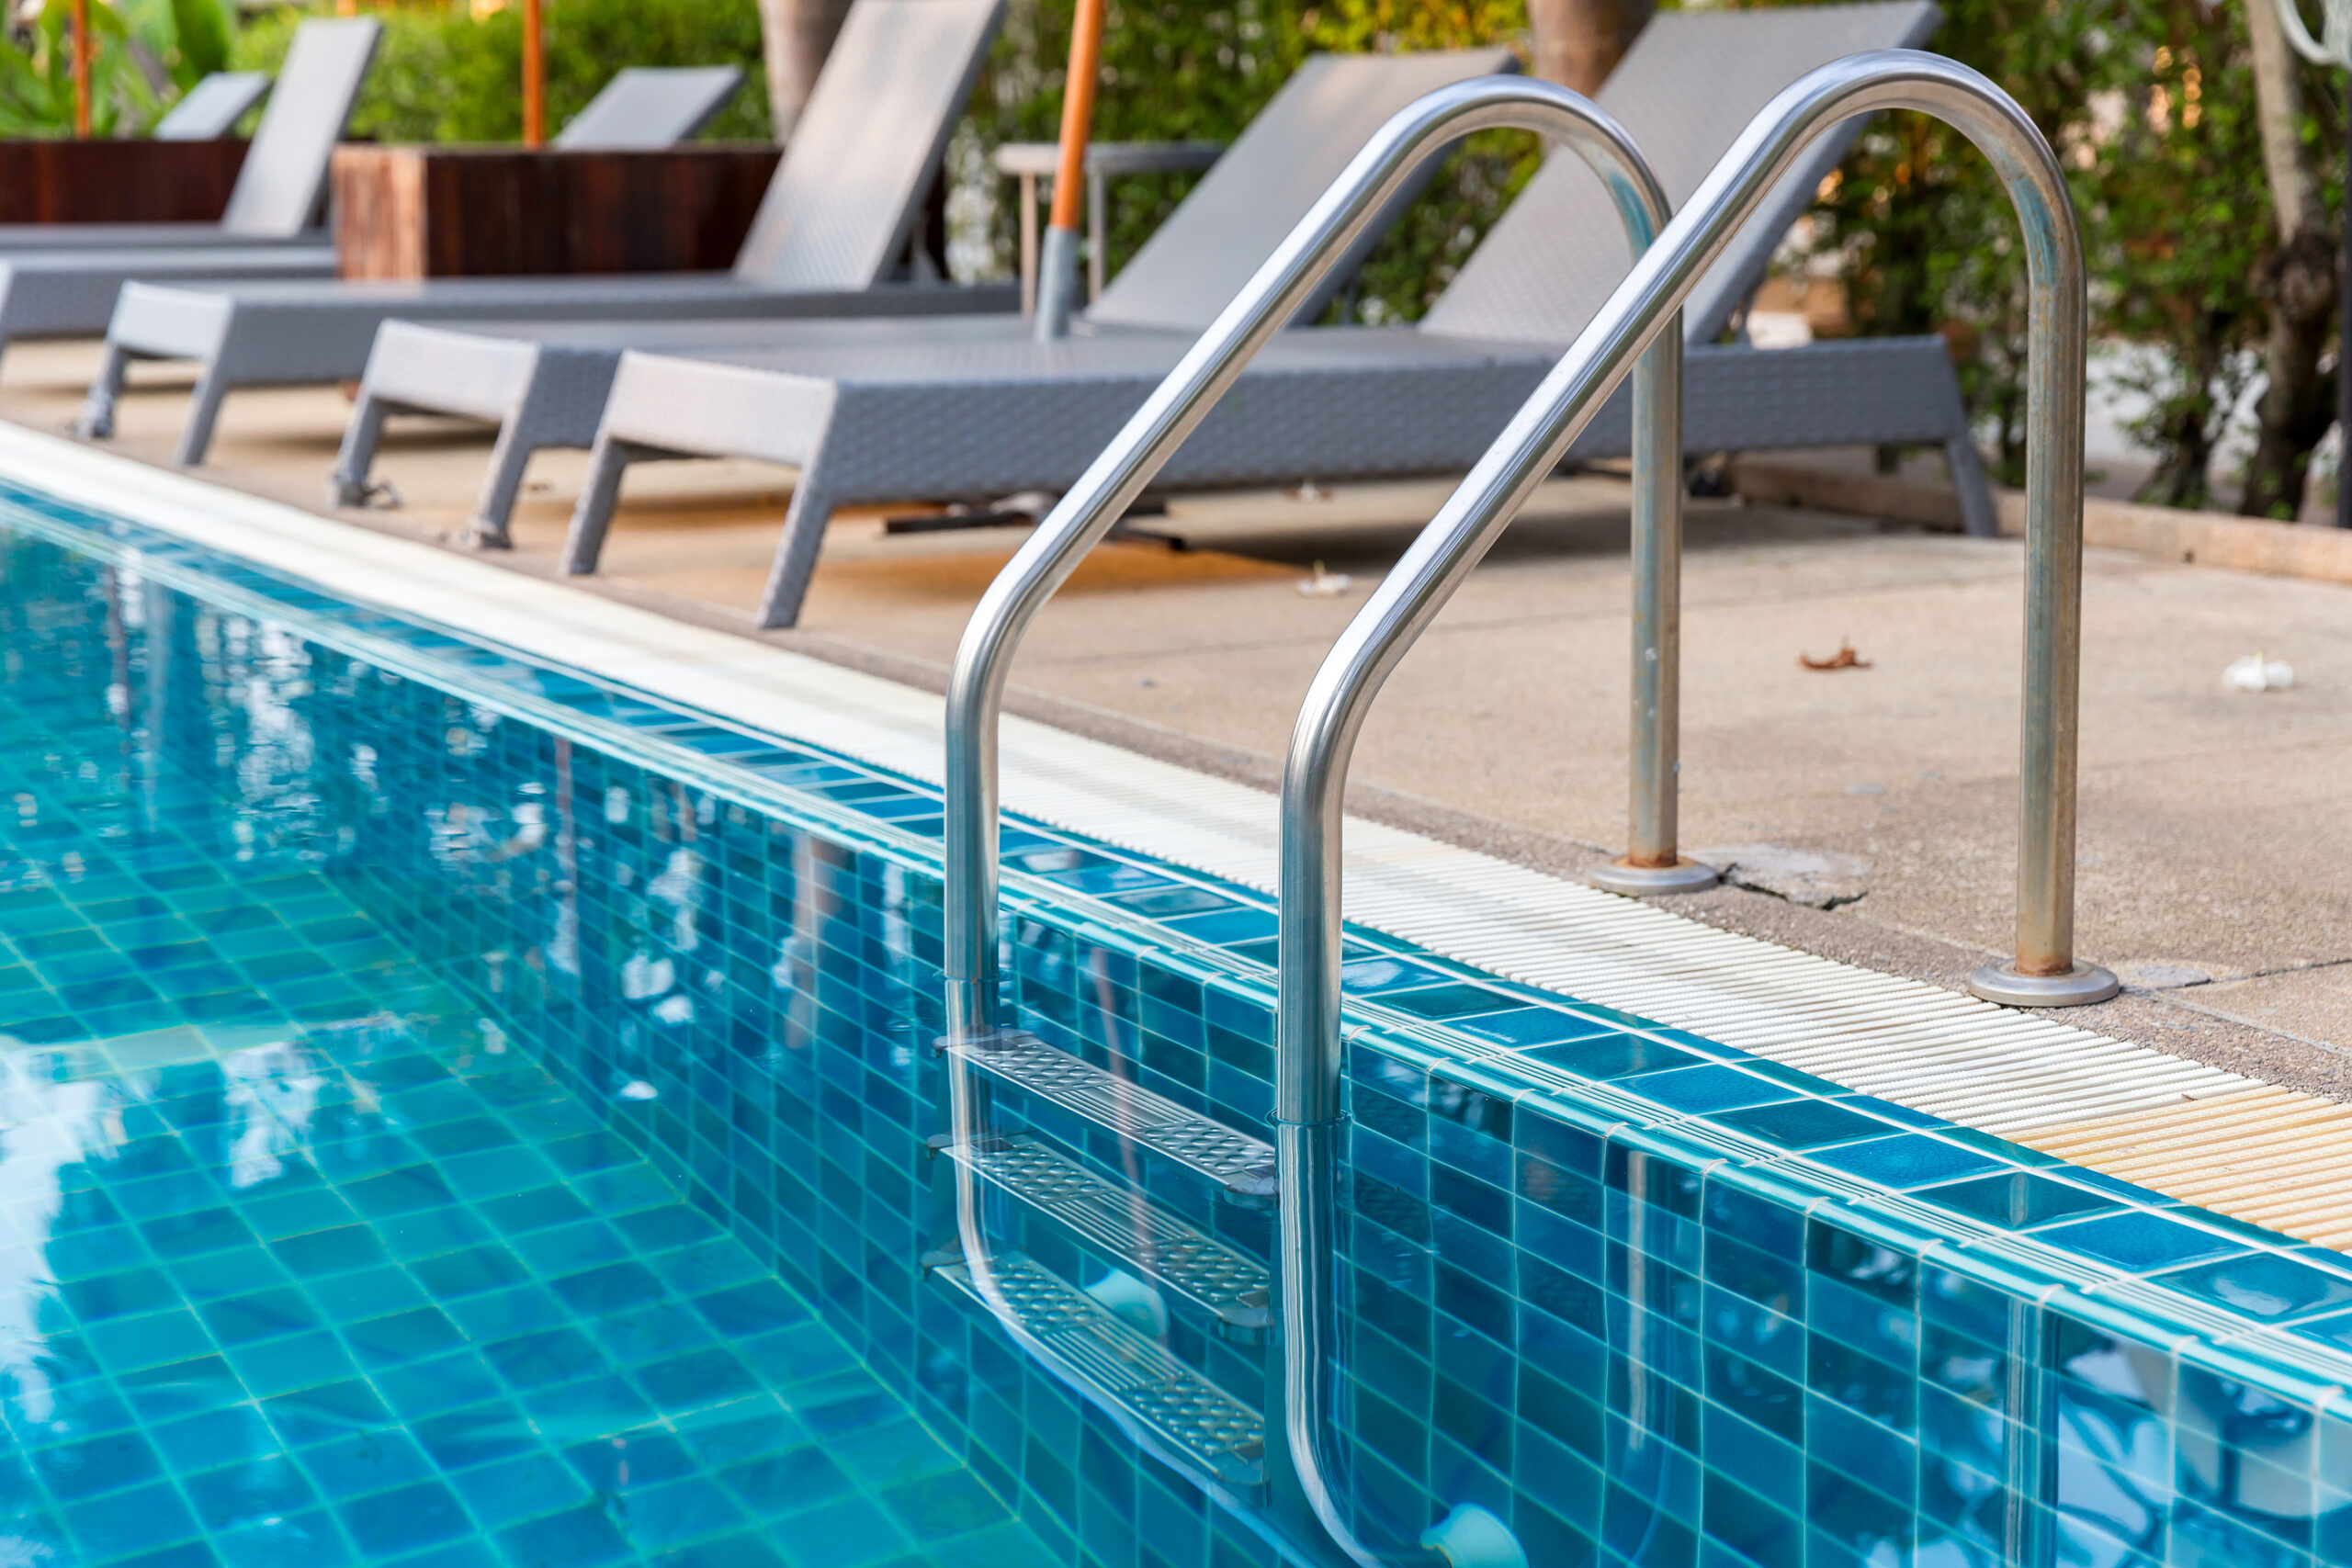 Pool Cleaning Services Victoria - Sludgebusters